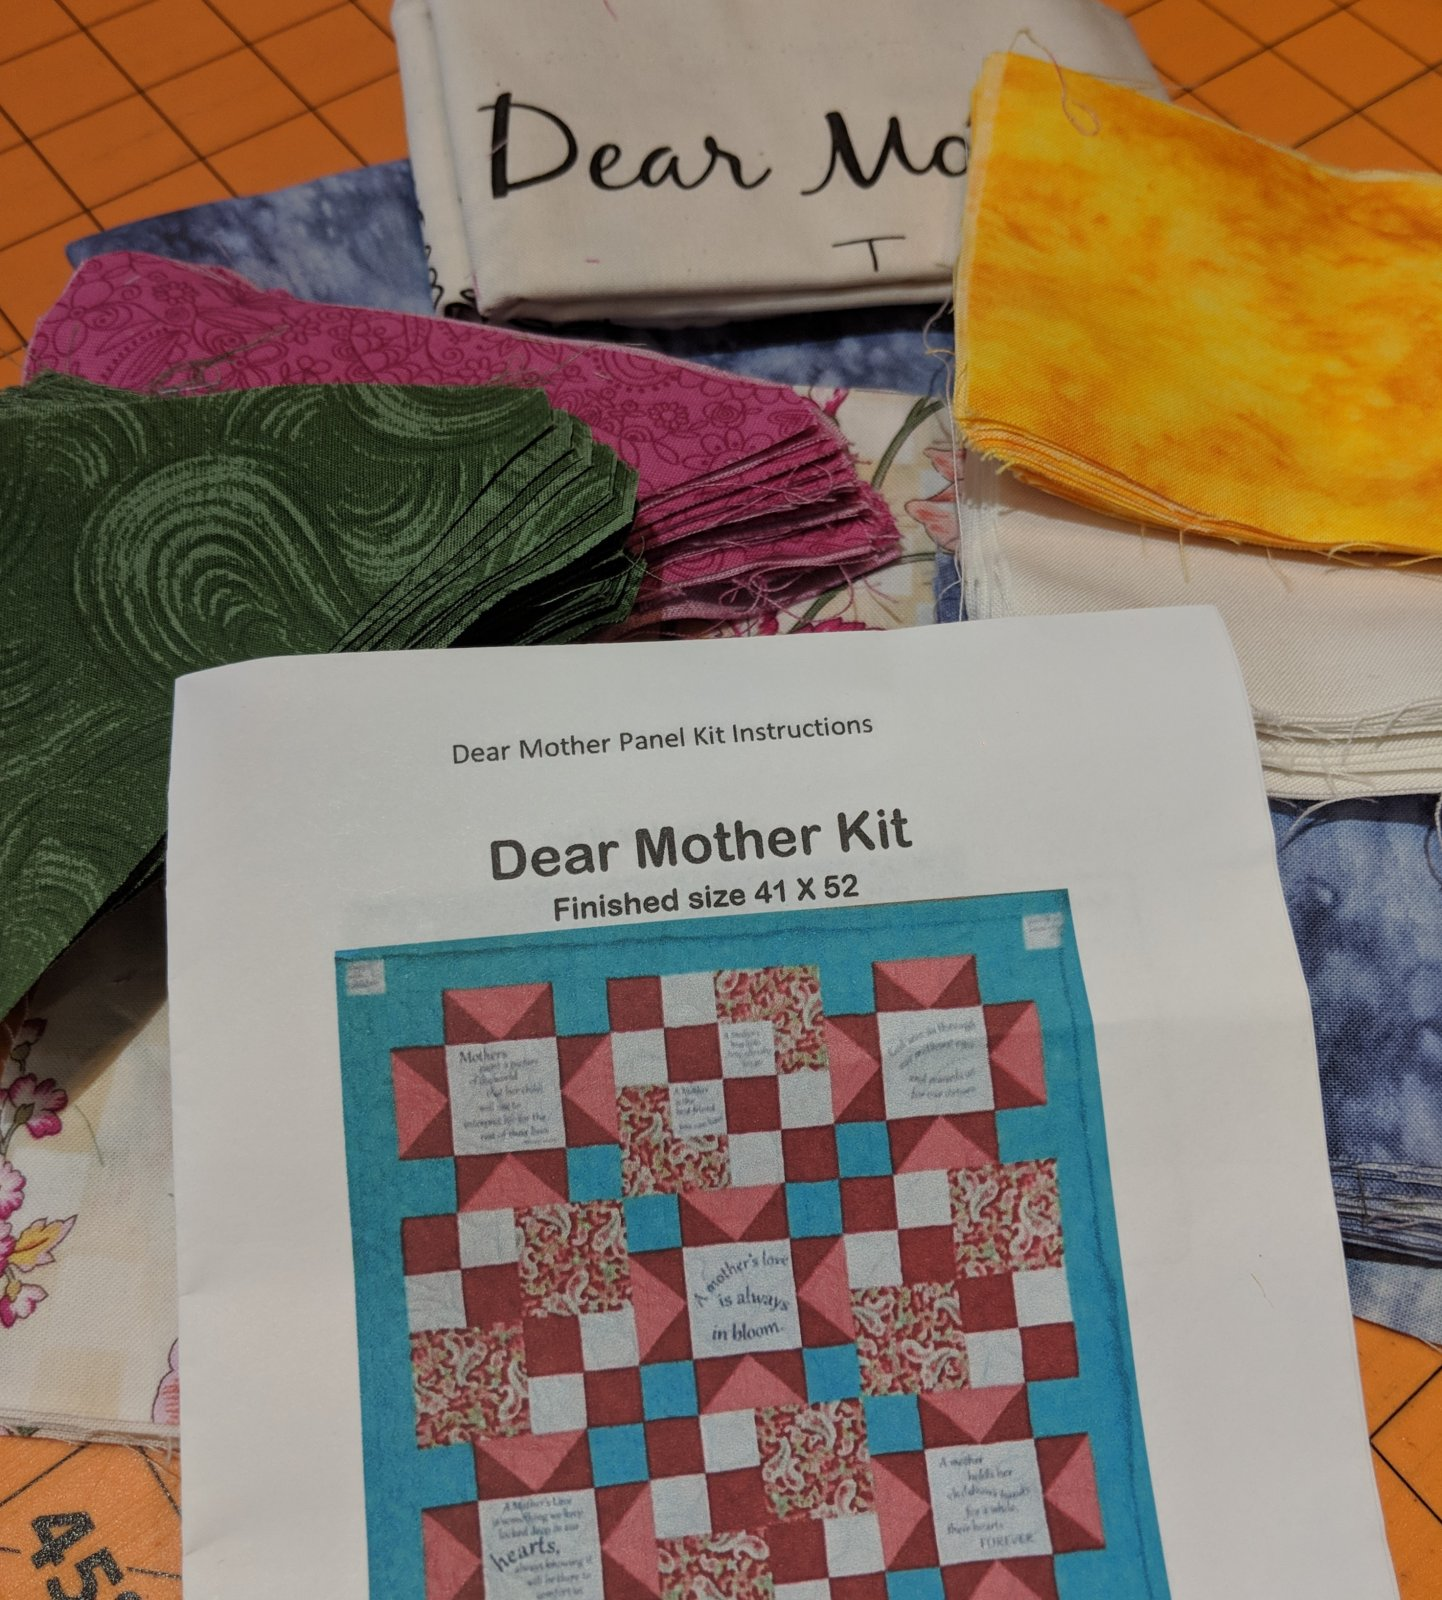 Dear Mother Kit  finishes 41'' x 52''